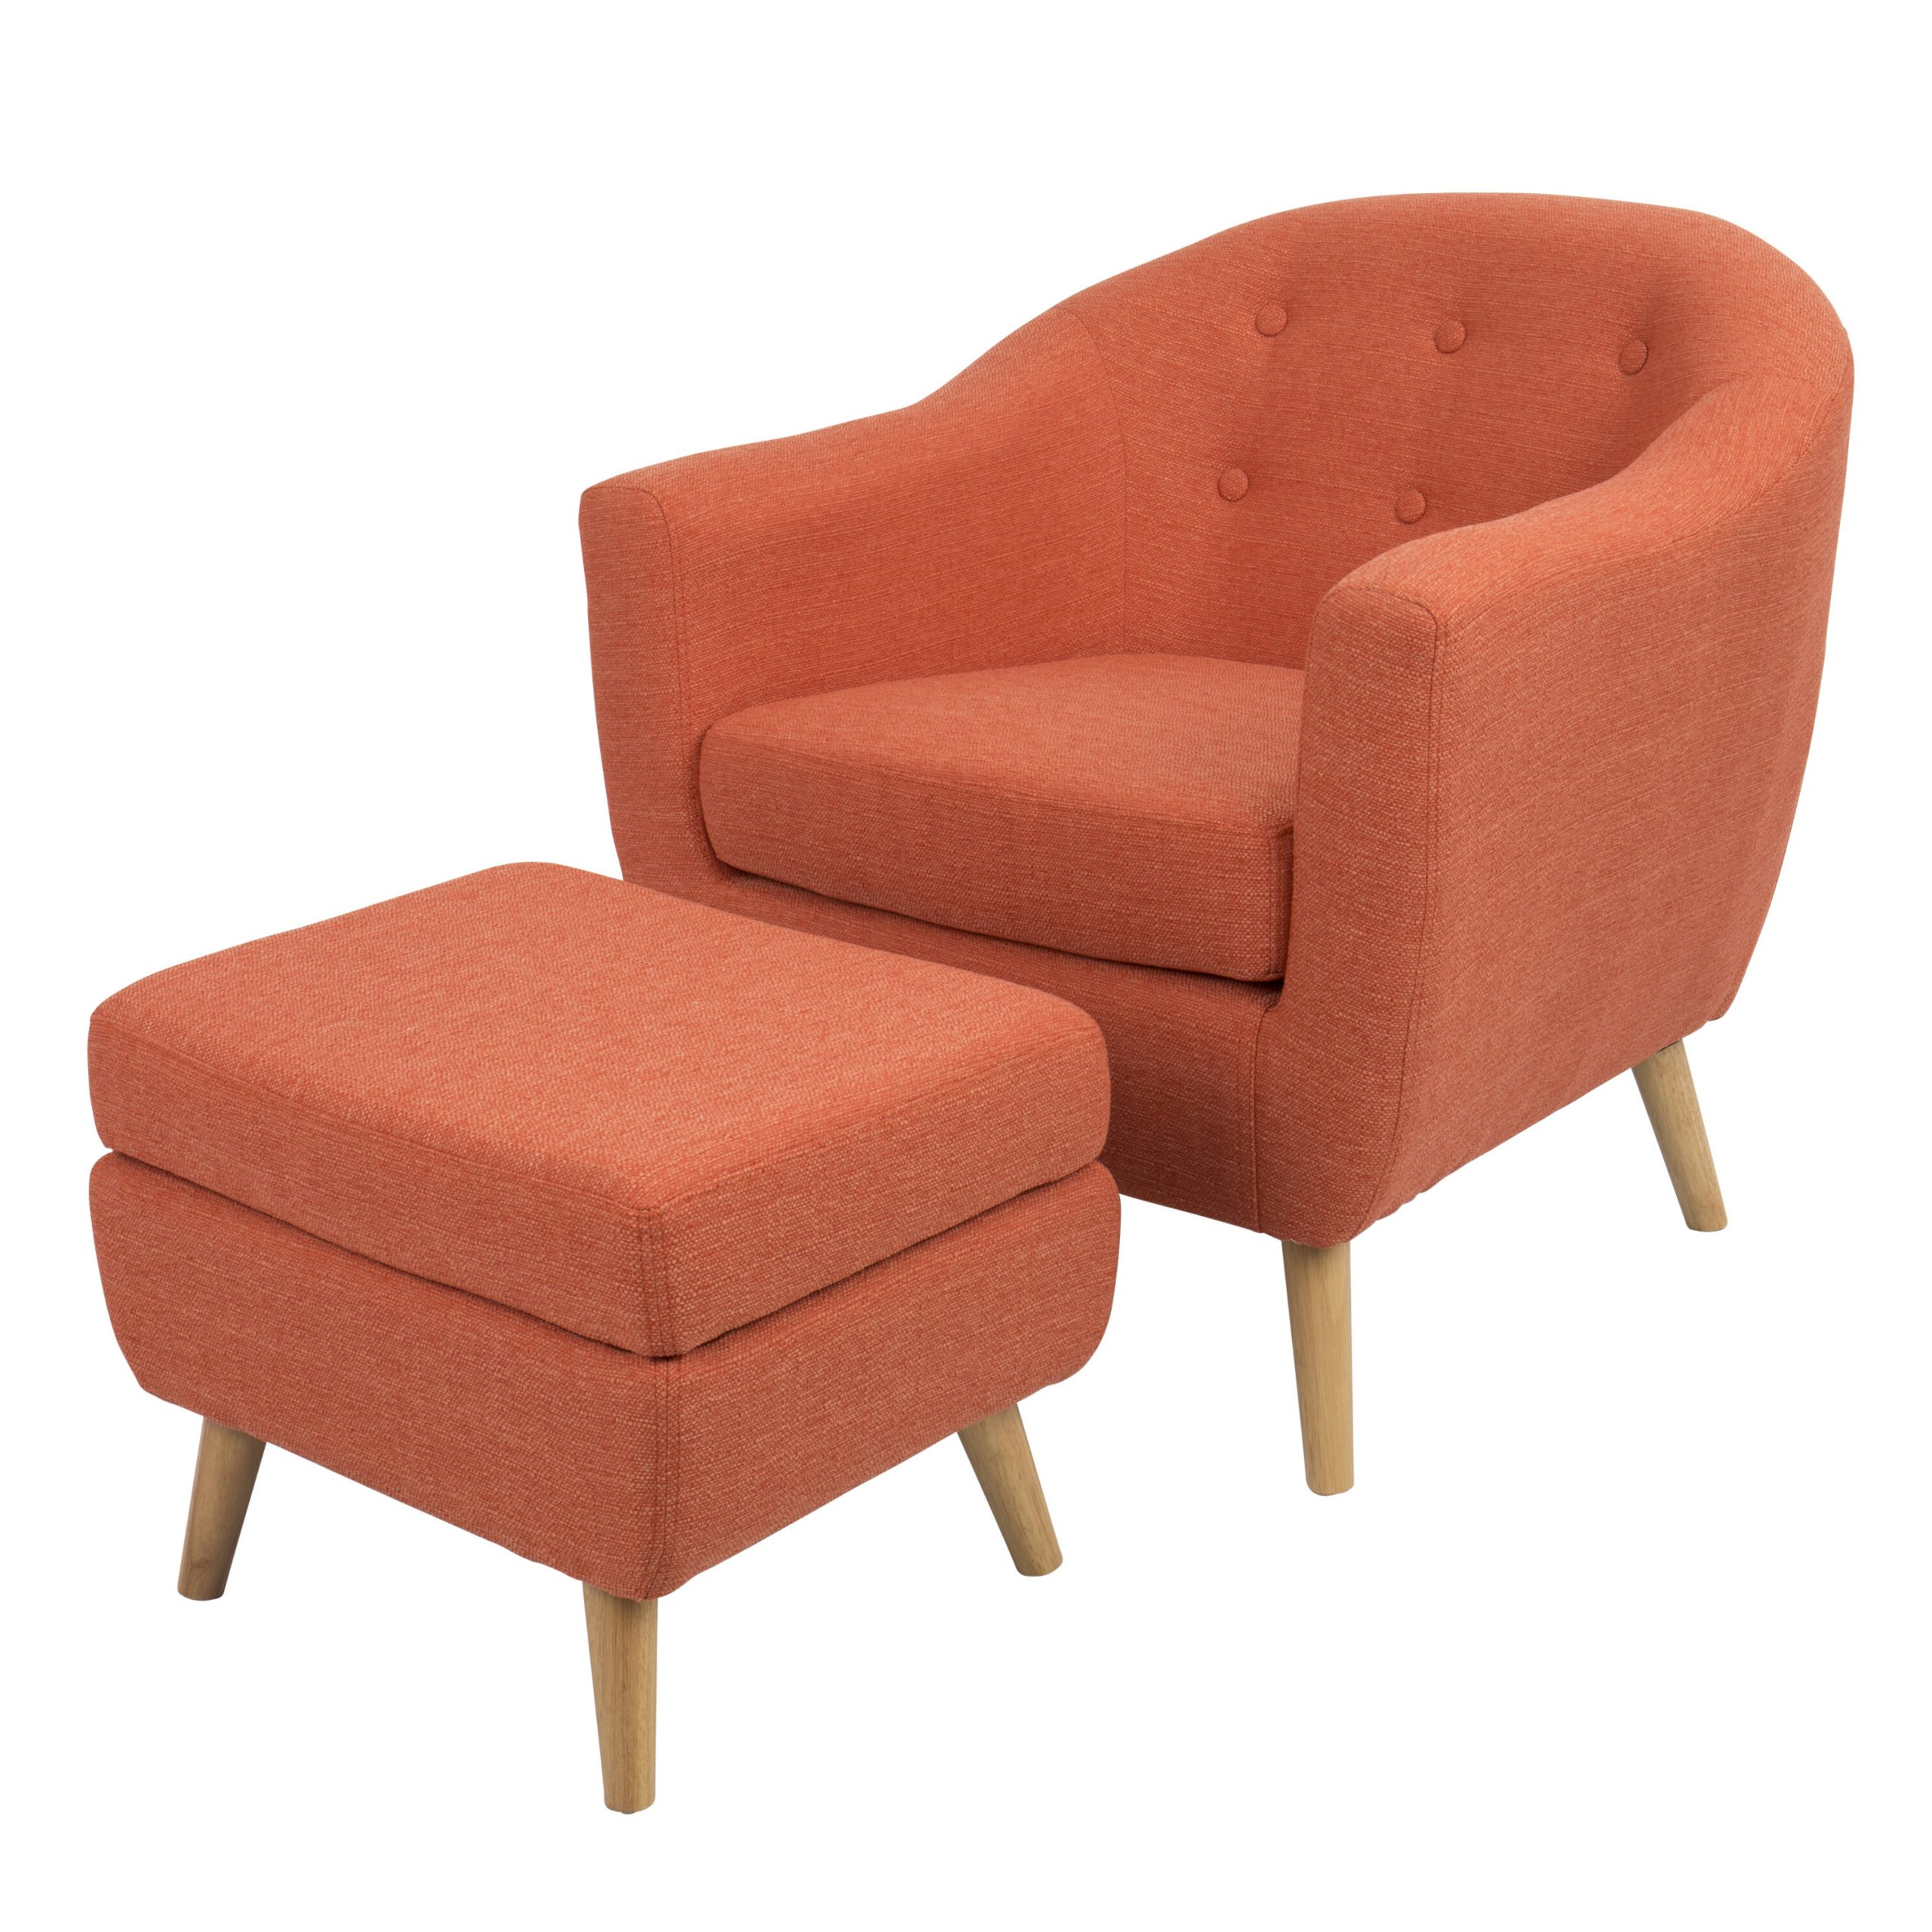 Barrel Mid Century Modern Accent Chairs You'll Love In 2021 Within Preferred Coomer Faux Leather Barrel Chairs (View 6 of 20)